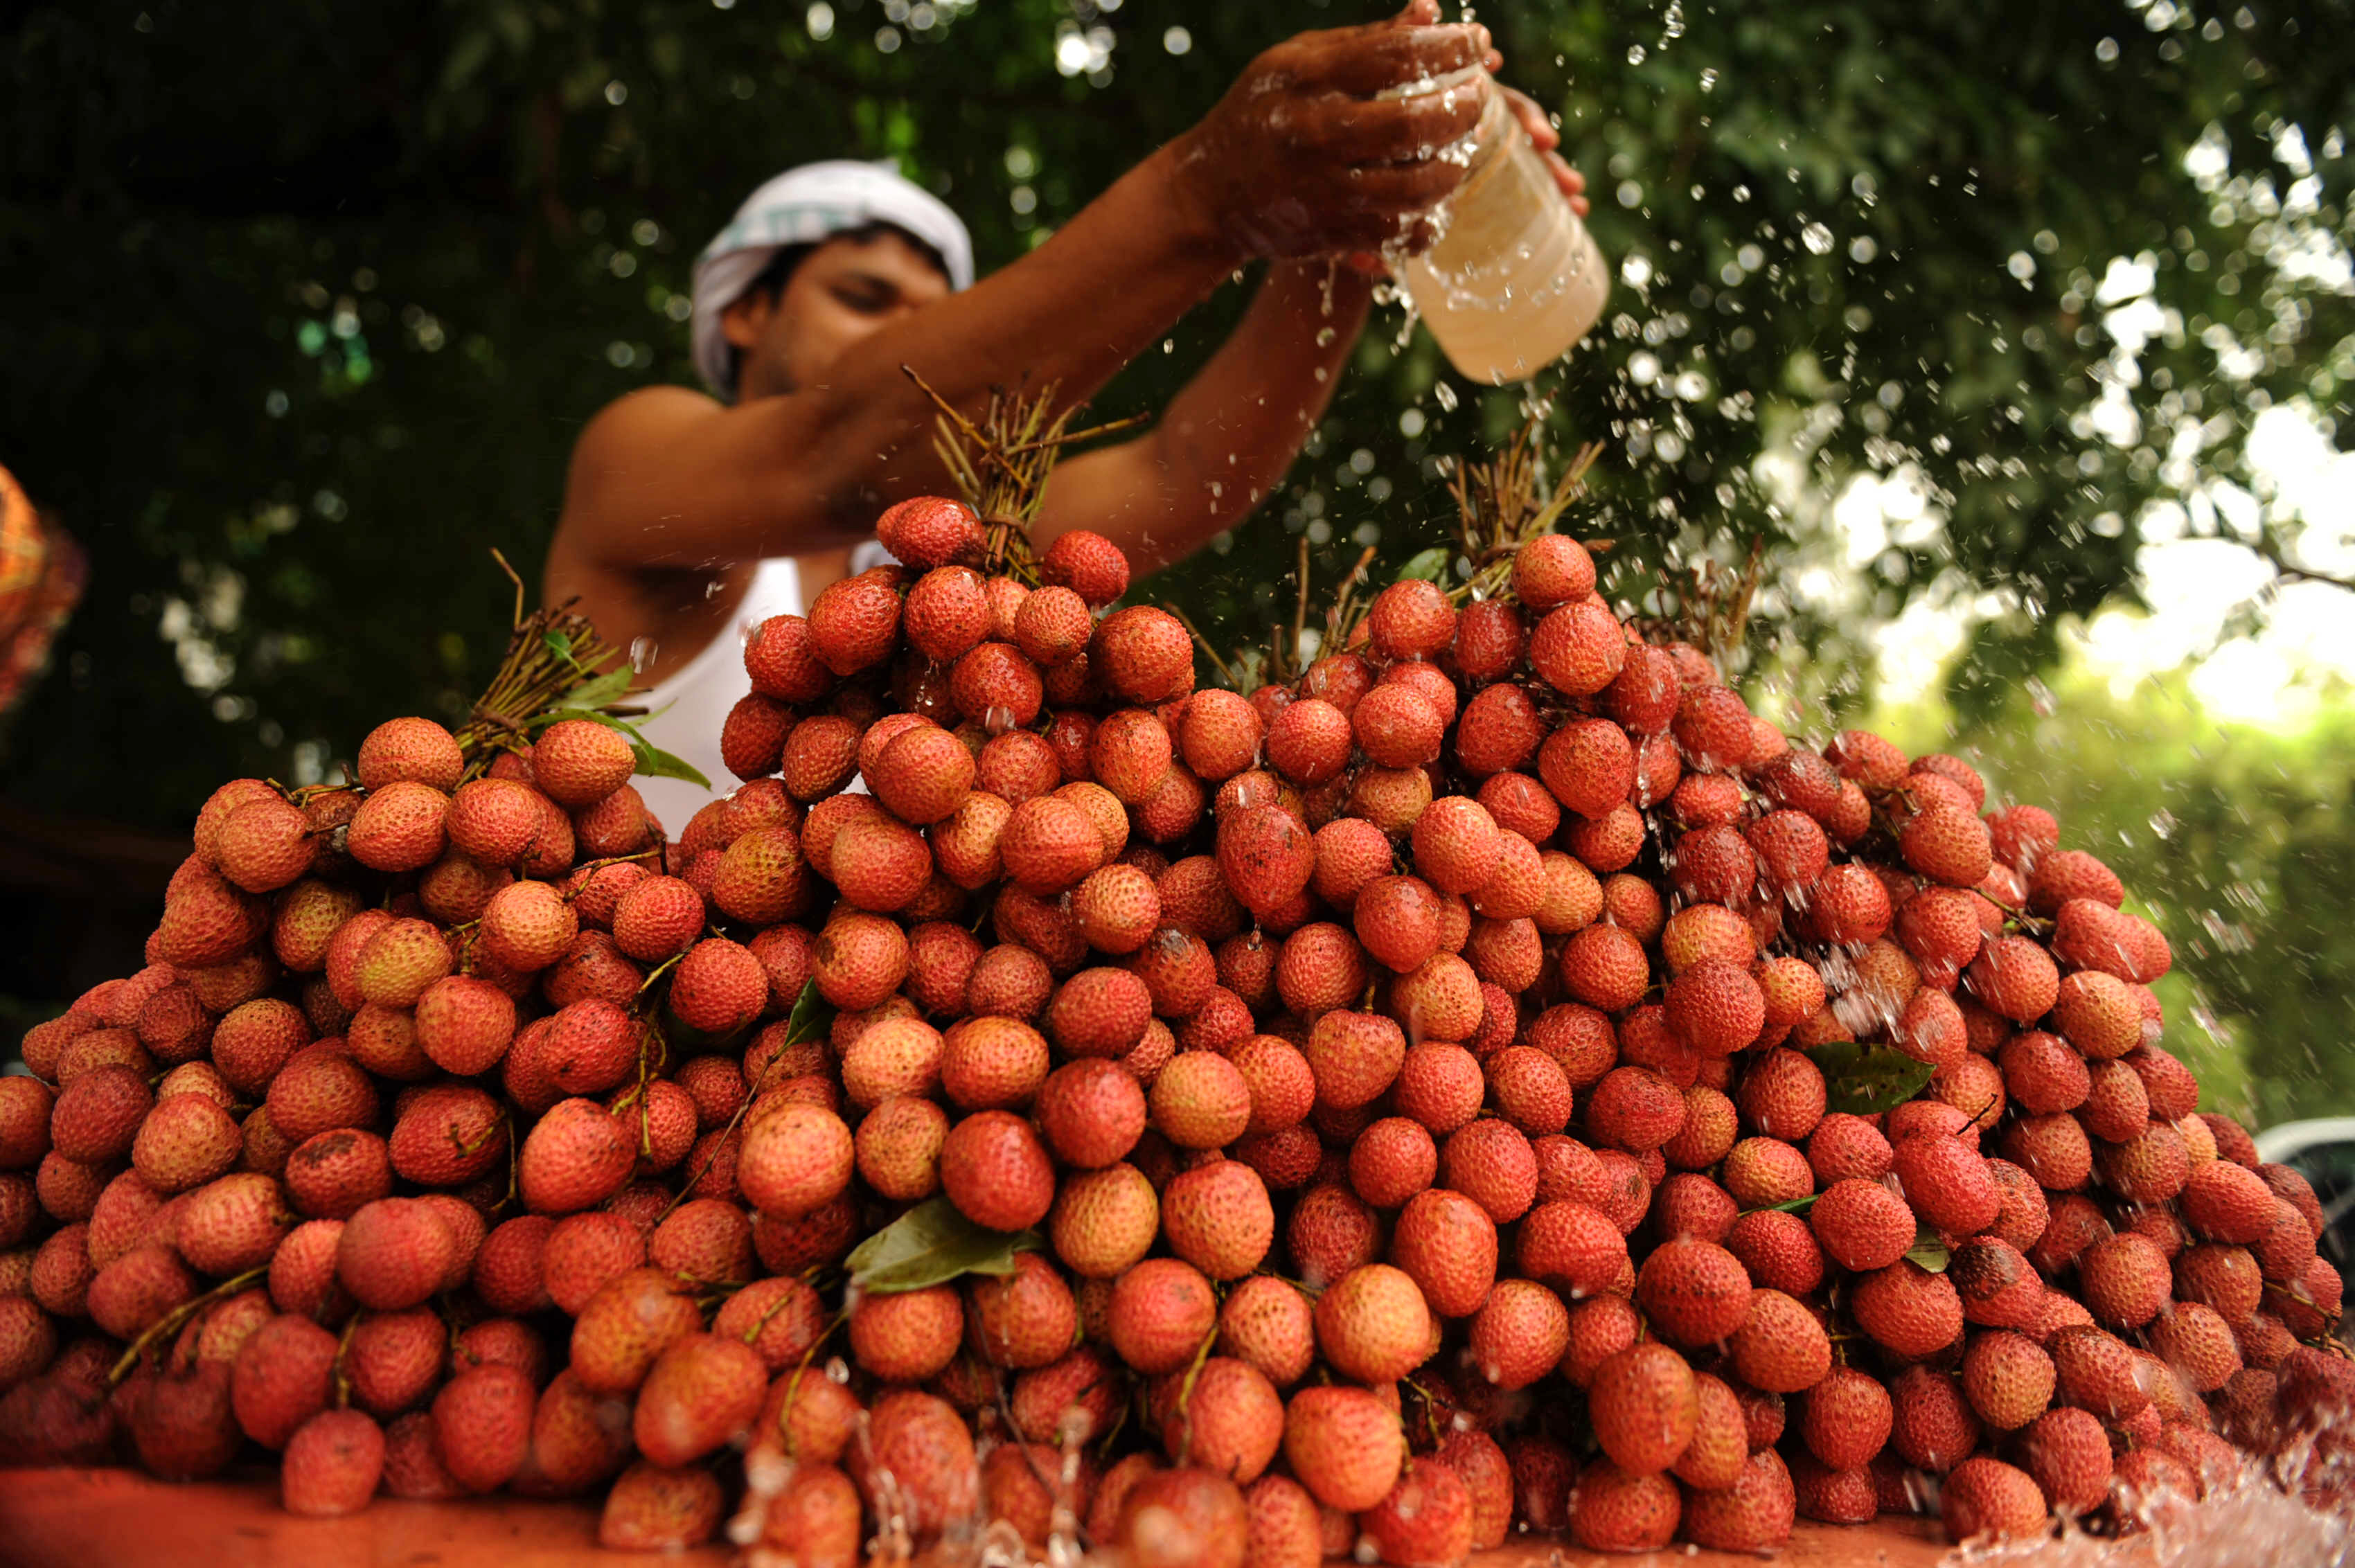 A mysterious brain fever potentially linked to lychees has killed more than one hundred children in India (Photo credit: DIPTENDU DUTTA/AFP/Getty Images)